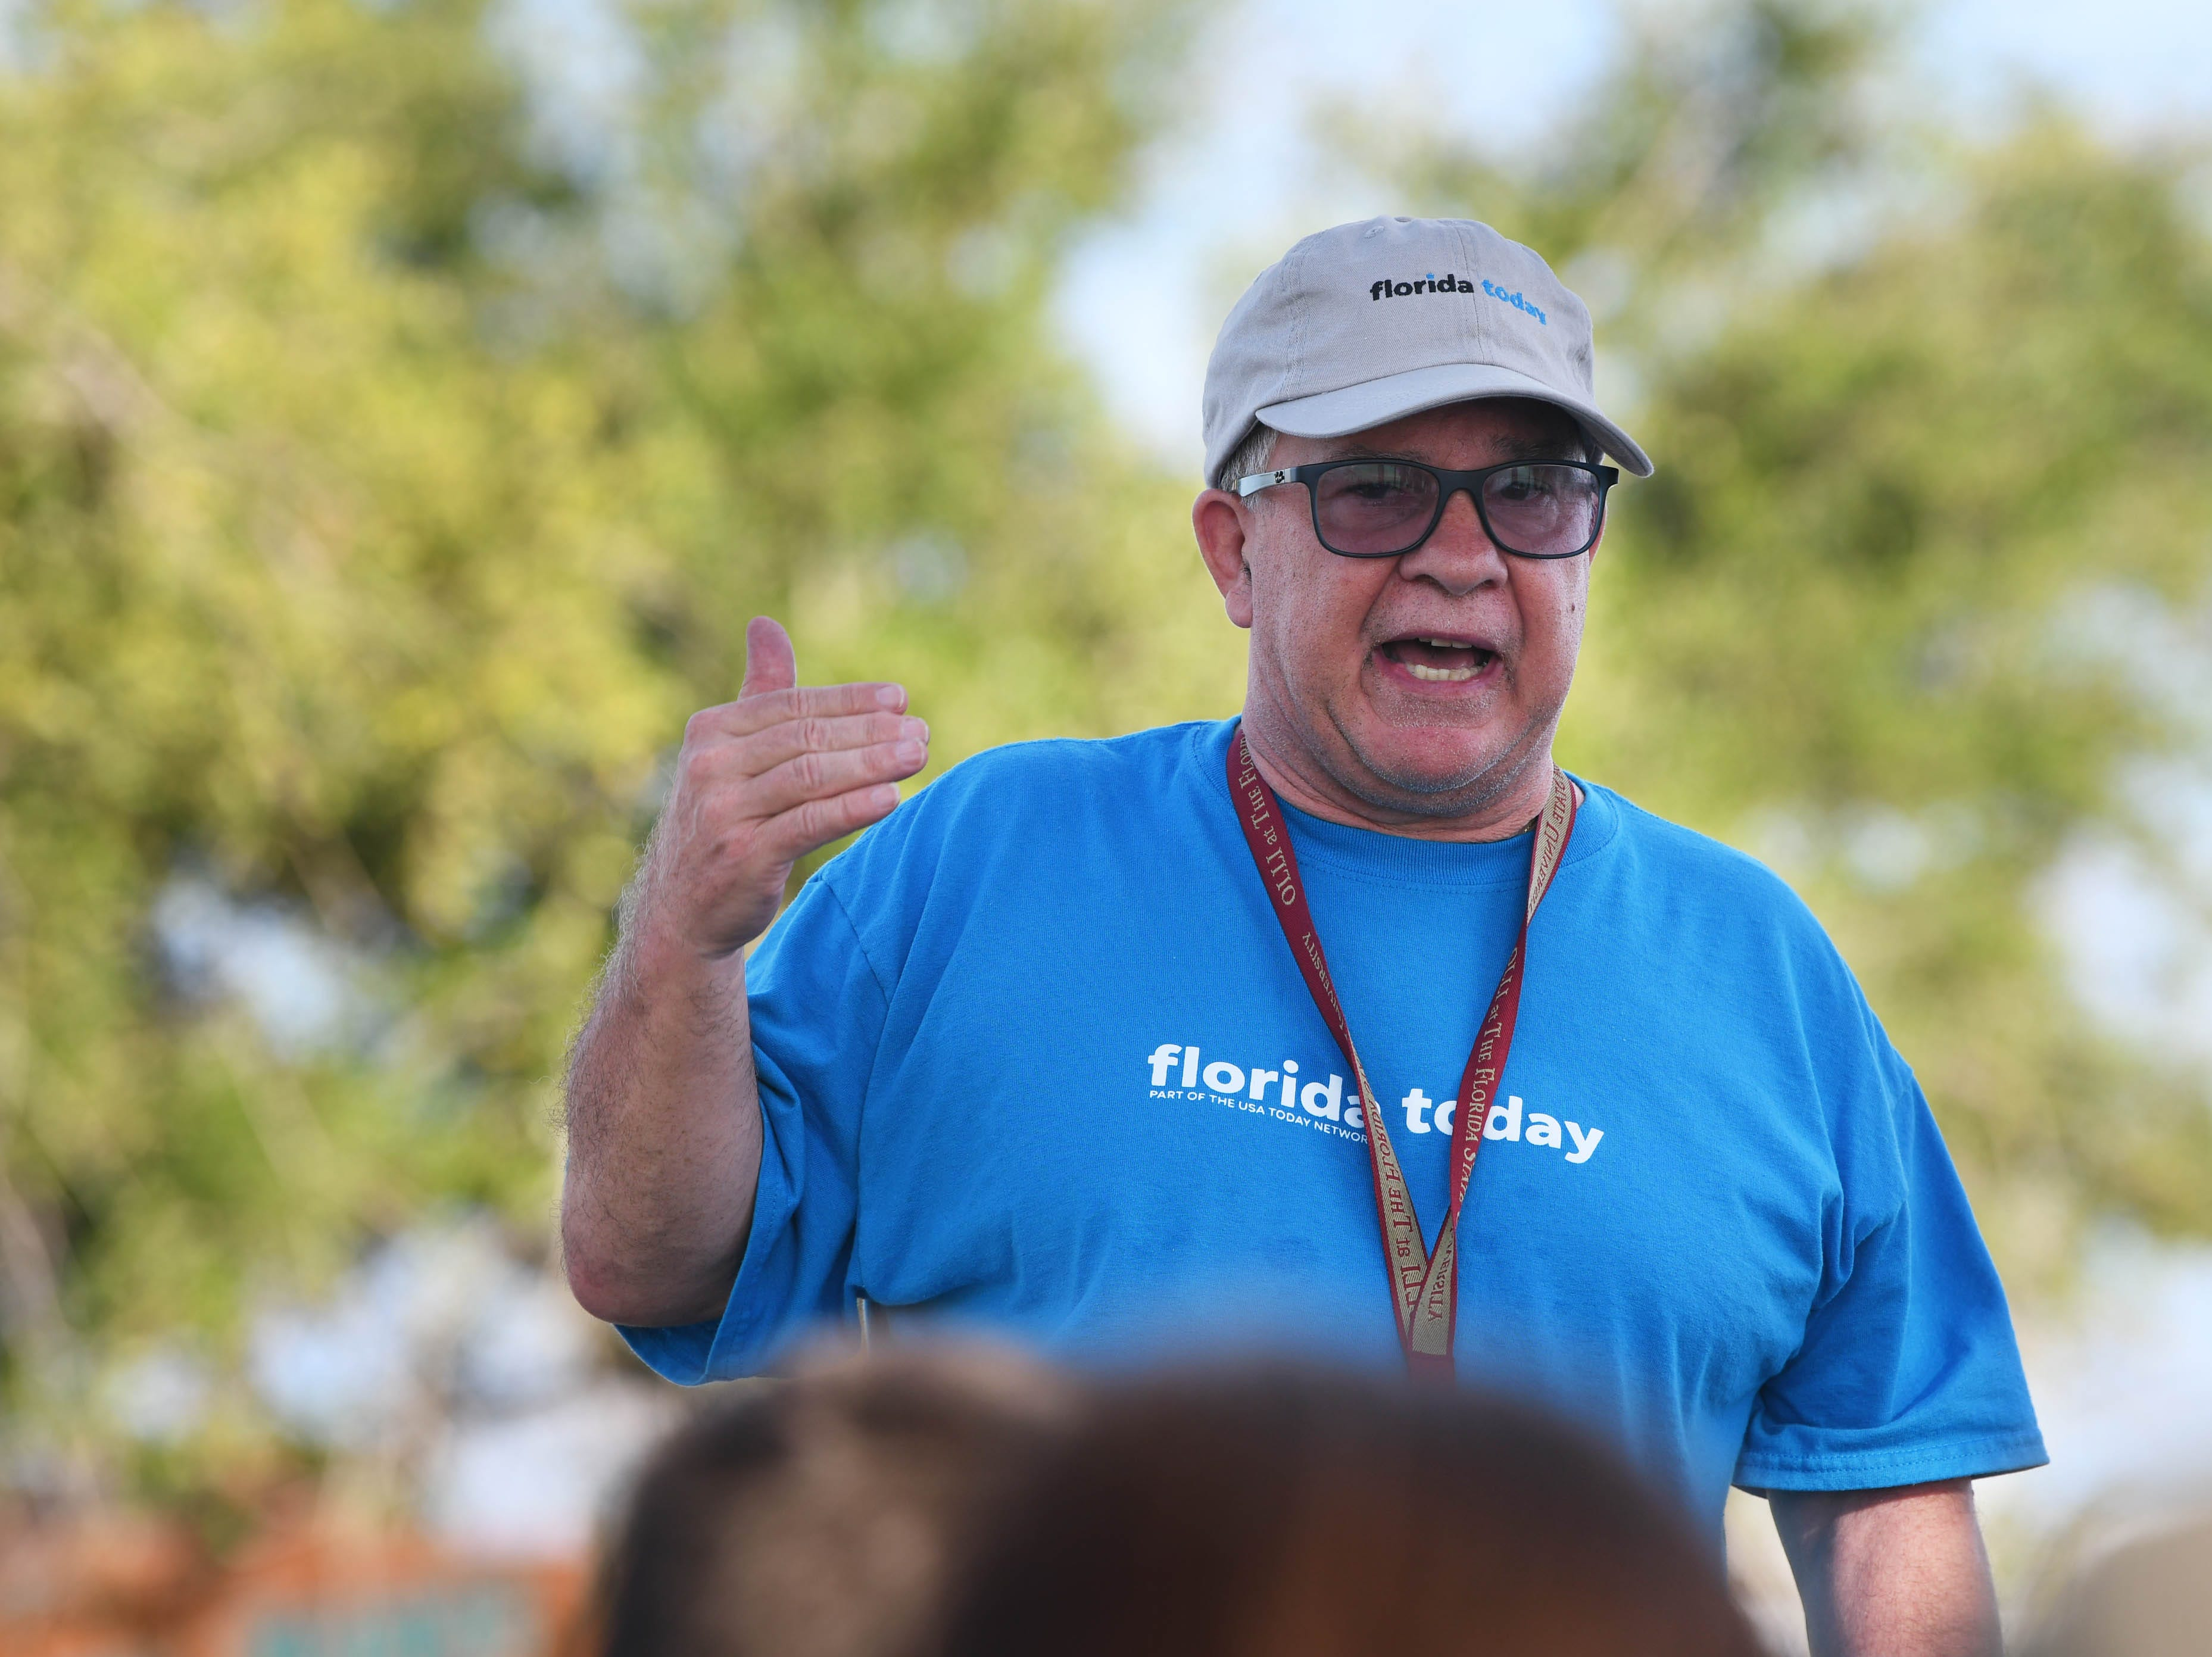 FLORIDA TODAY Executive Editor Bob Gabordi addresses the crowd at Kelly Park East in Merritt Island Saturday. This was the final stop of the Keep Brevard Beautiful/FLORIDA TODAY Summer Series cleanup